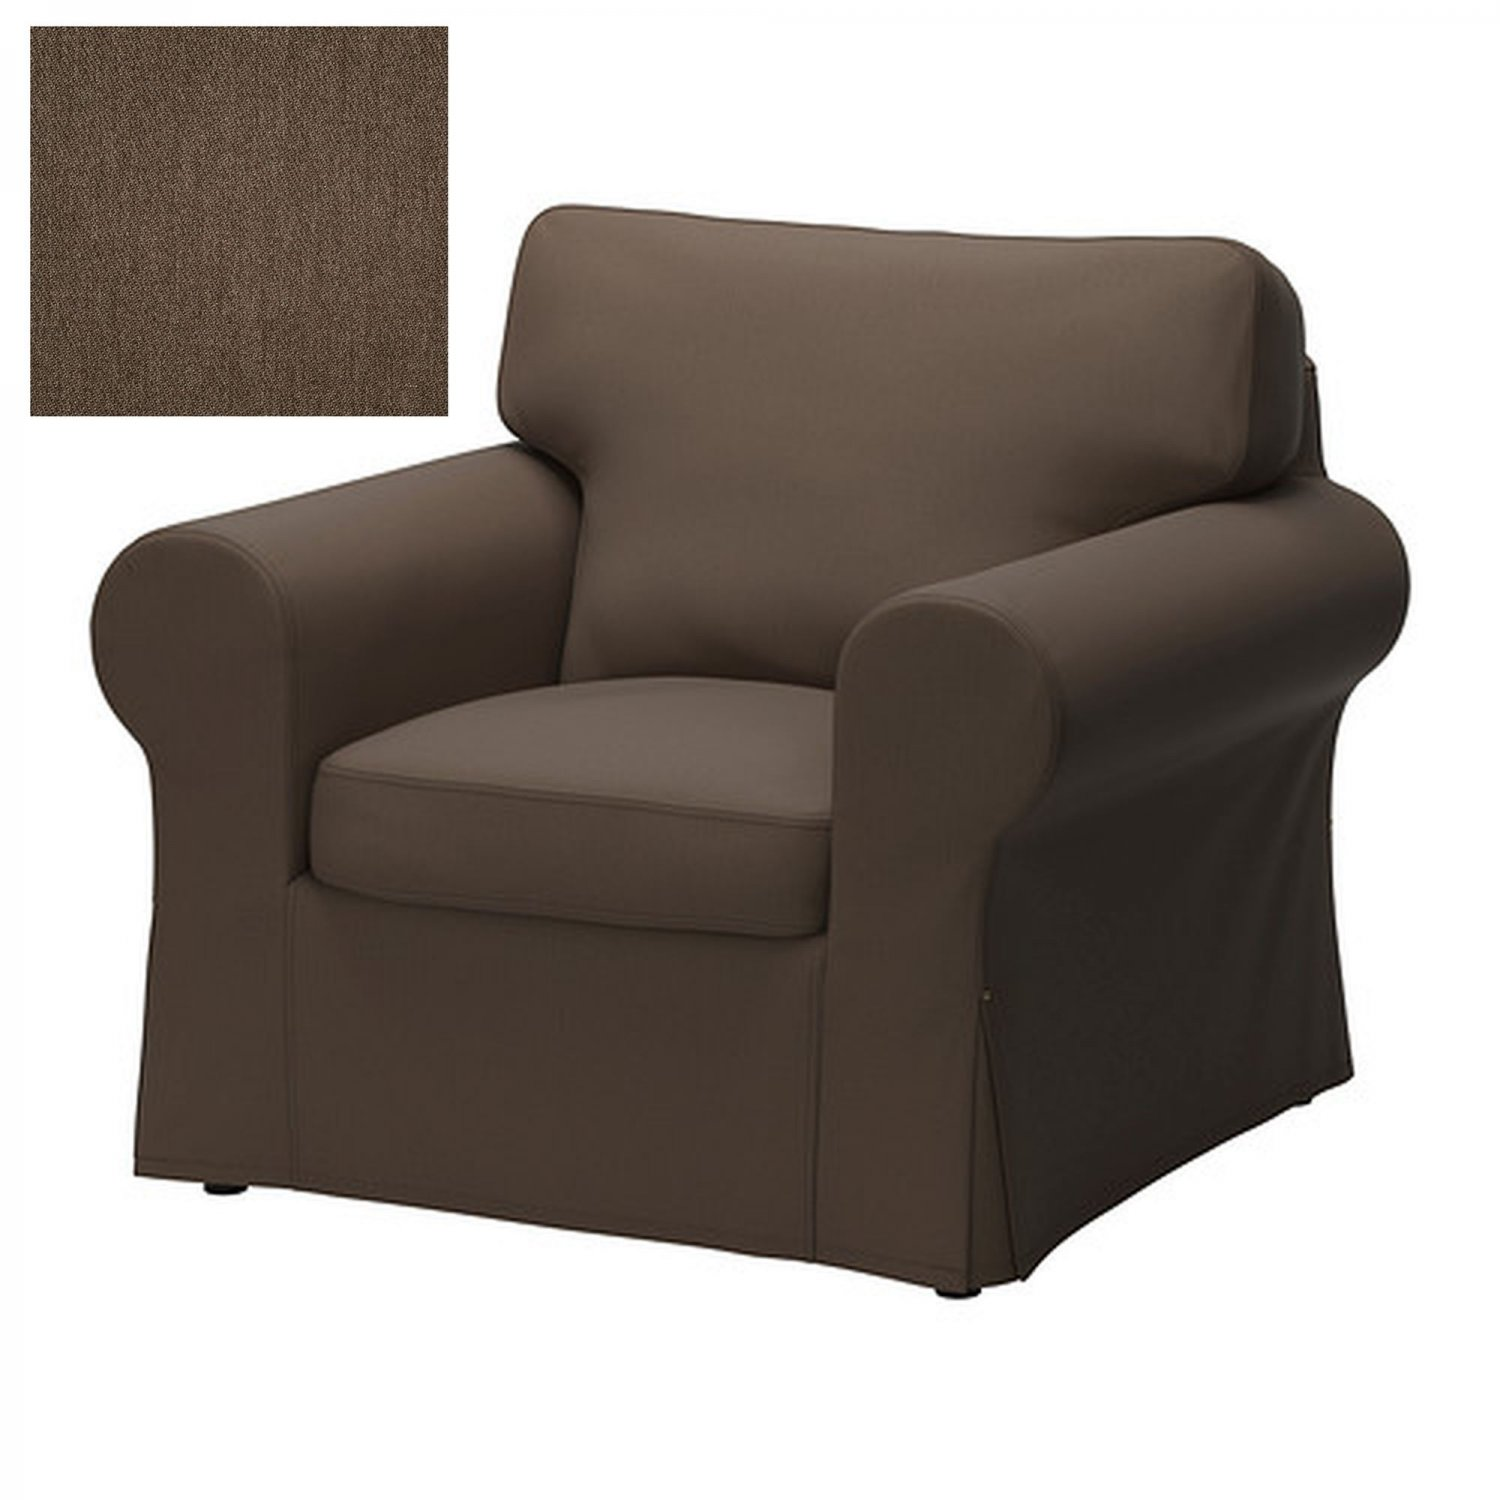 ikea jennylund chair covers uk cover rentals in maryland ektorp armchair slipcover jonsboda brown